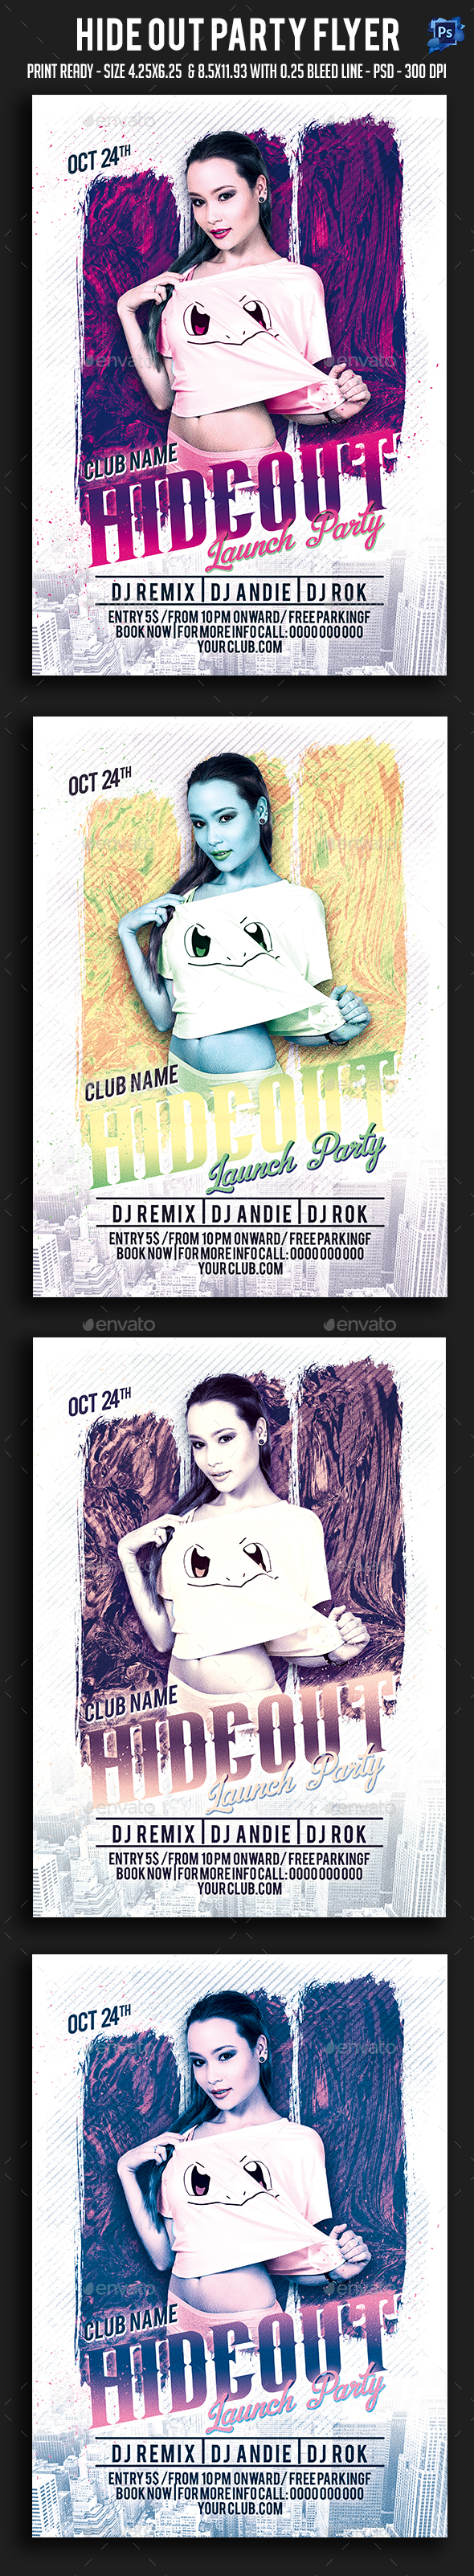 Hide Out Party Flyer - Clubs & Parties Events